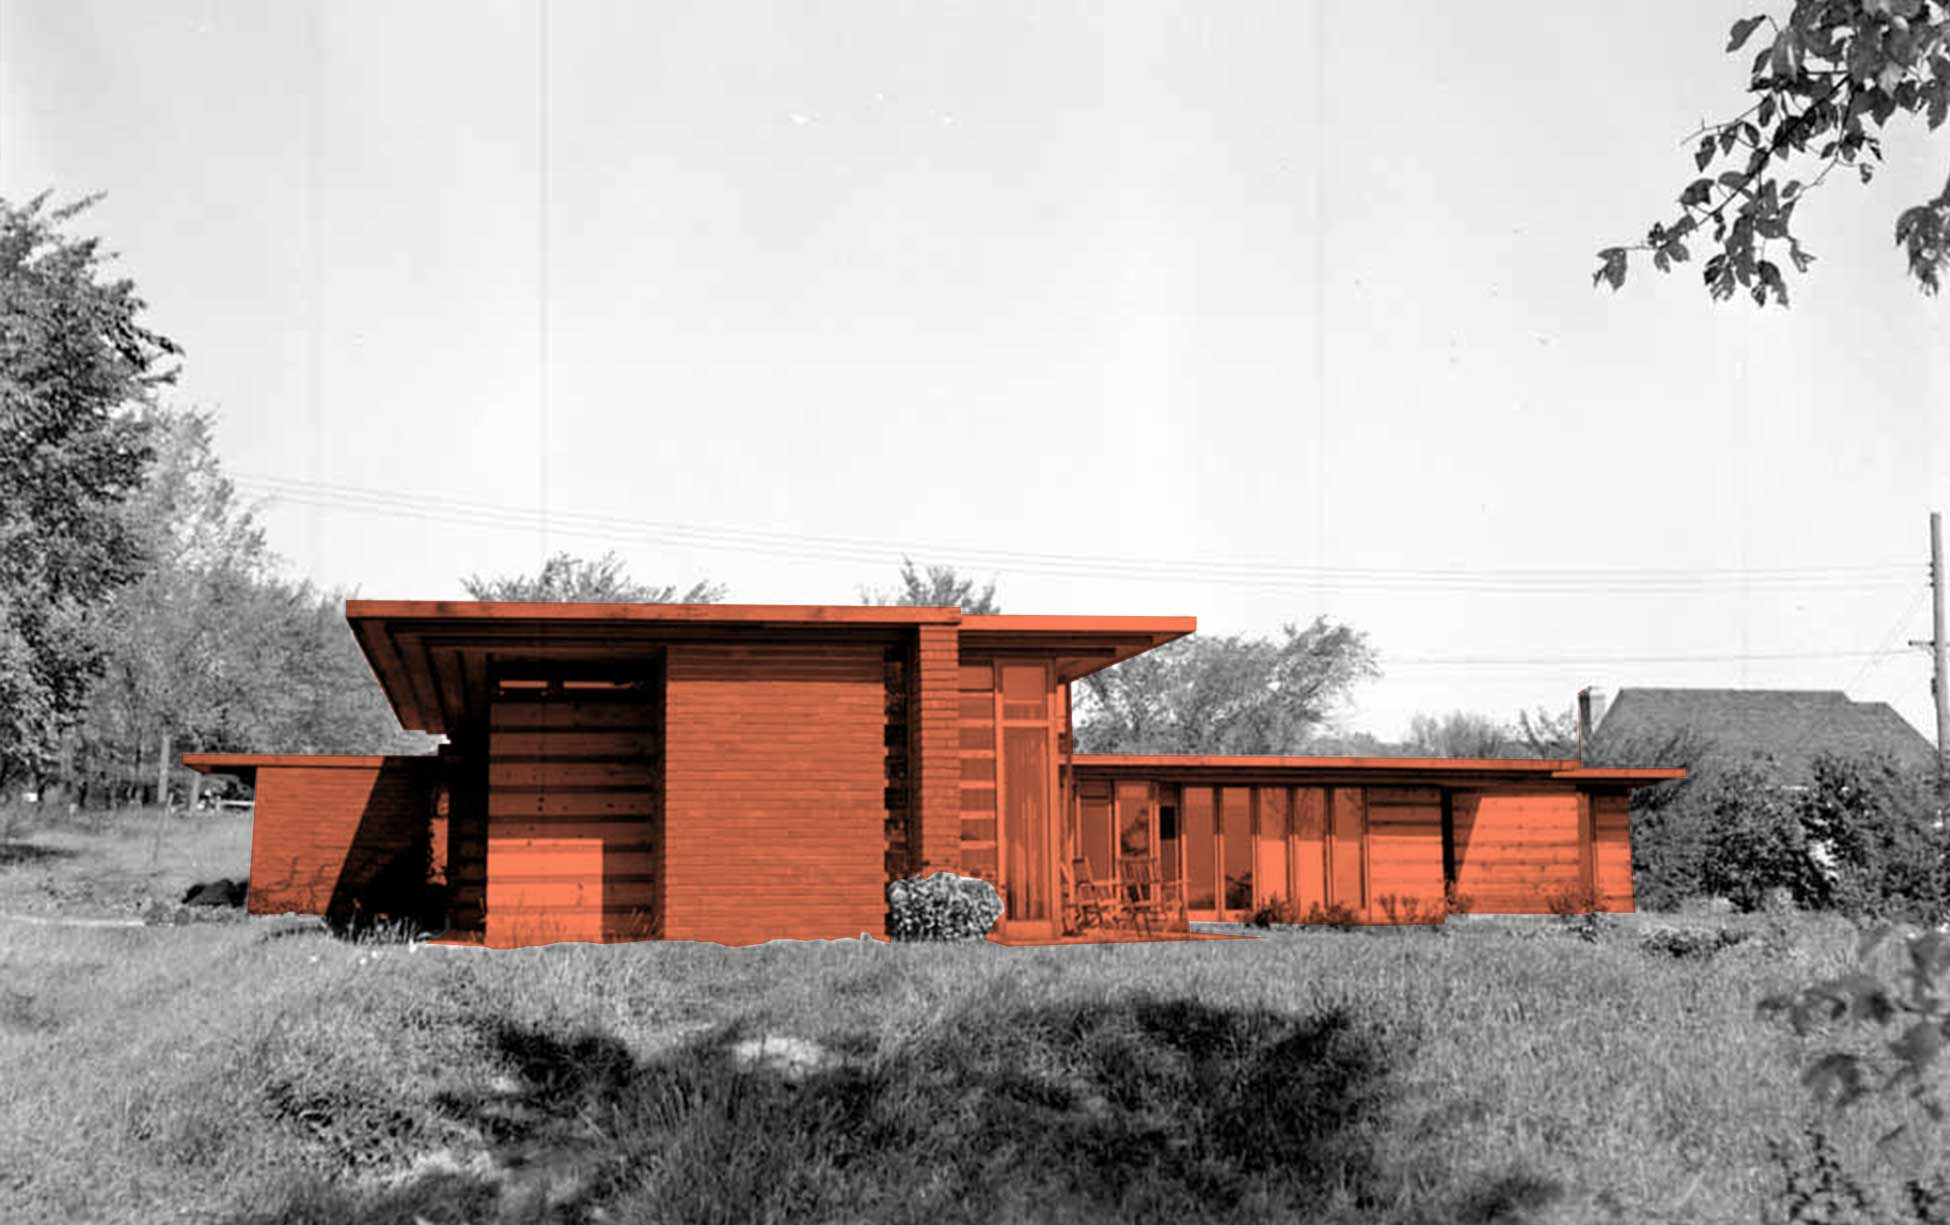 frank-lloyd-wright-usonian-house